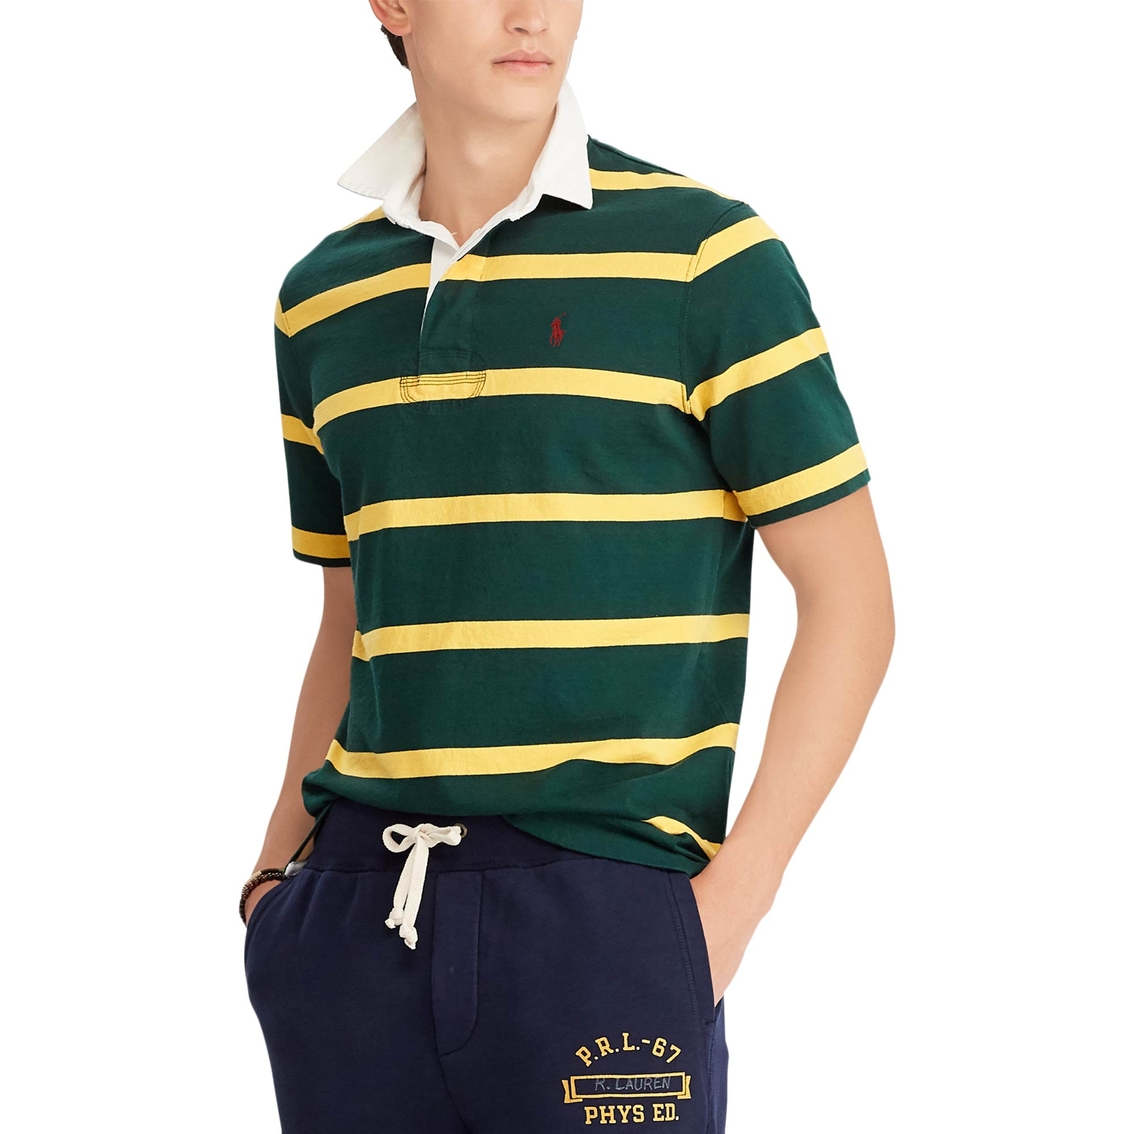 af25d578974 Polo Ralph Lauren The Iconic Rugby Shirt | Polos | Father's Day Shop ...